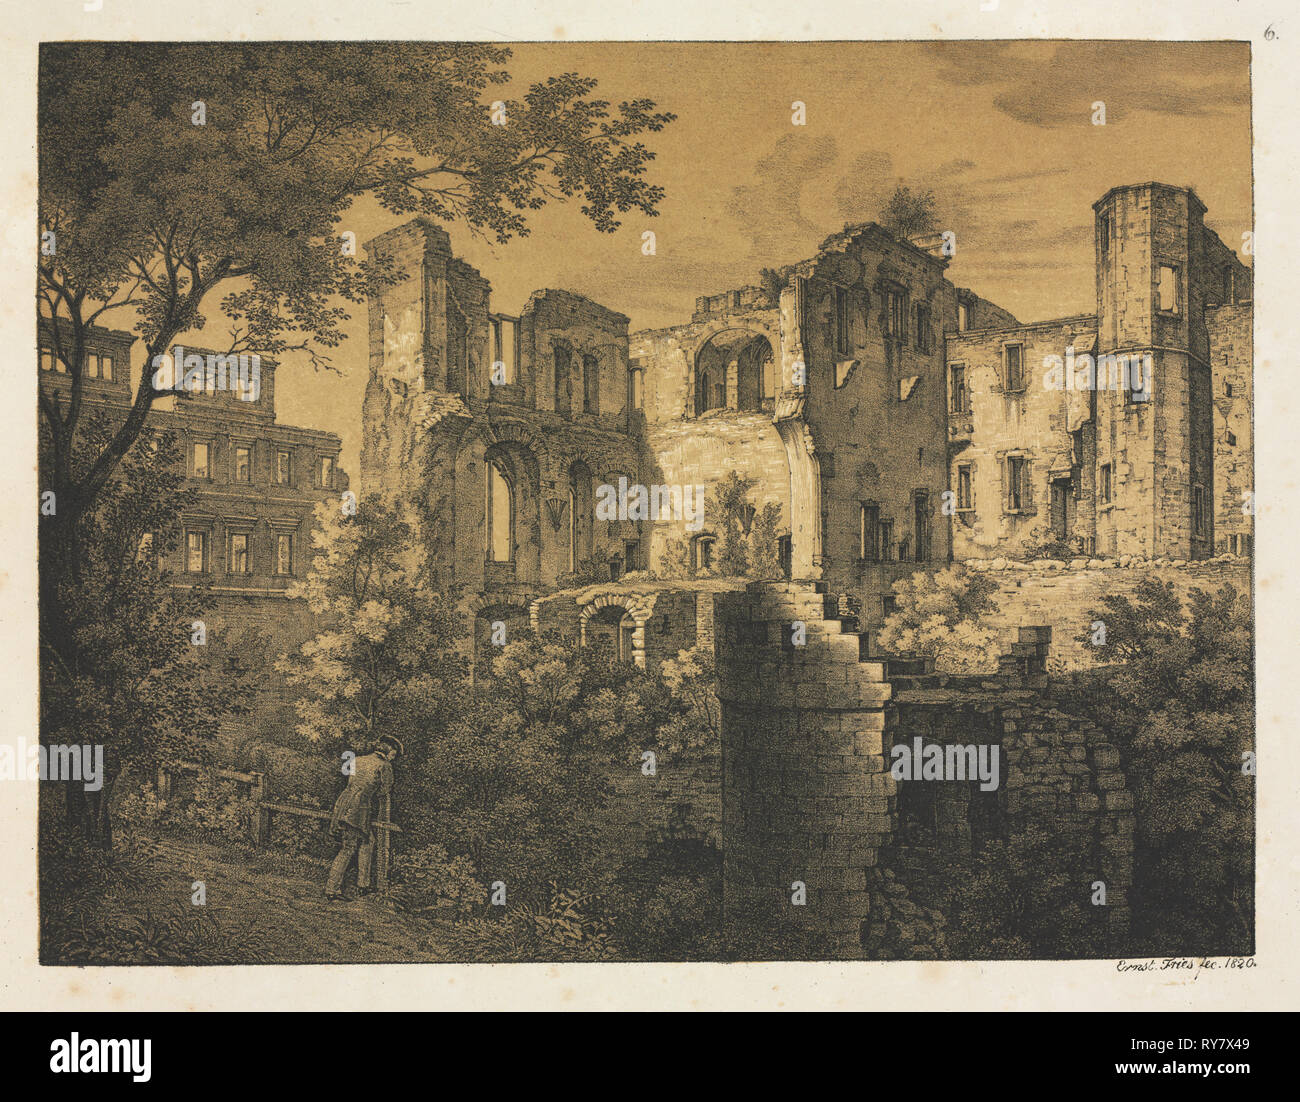 Six Views of Heidelberg Castle: Western Part , 1820. Ernst Fries (German, 1801-1833), Mohr & Winter, Heidelberg. Lithograph printed in black and a deep ochre tint stone overall; sheet: 38.5 x 50 cm (15 3/16 x 19 11/16 in - Stock Image